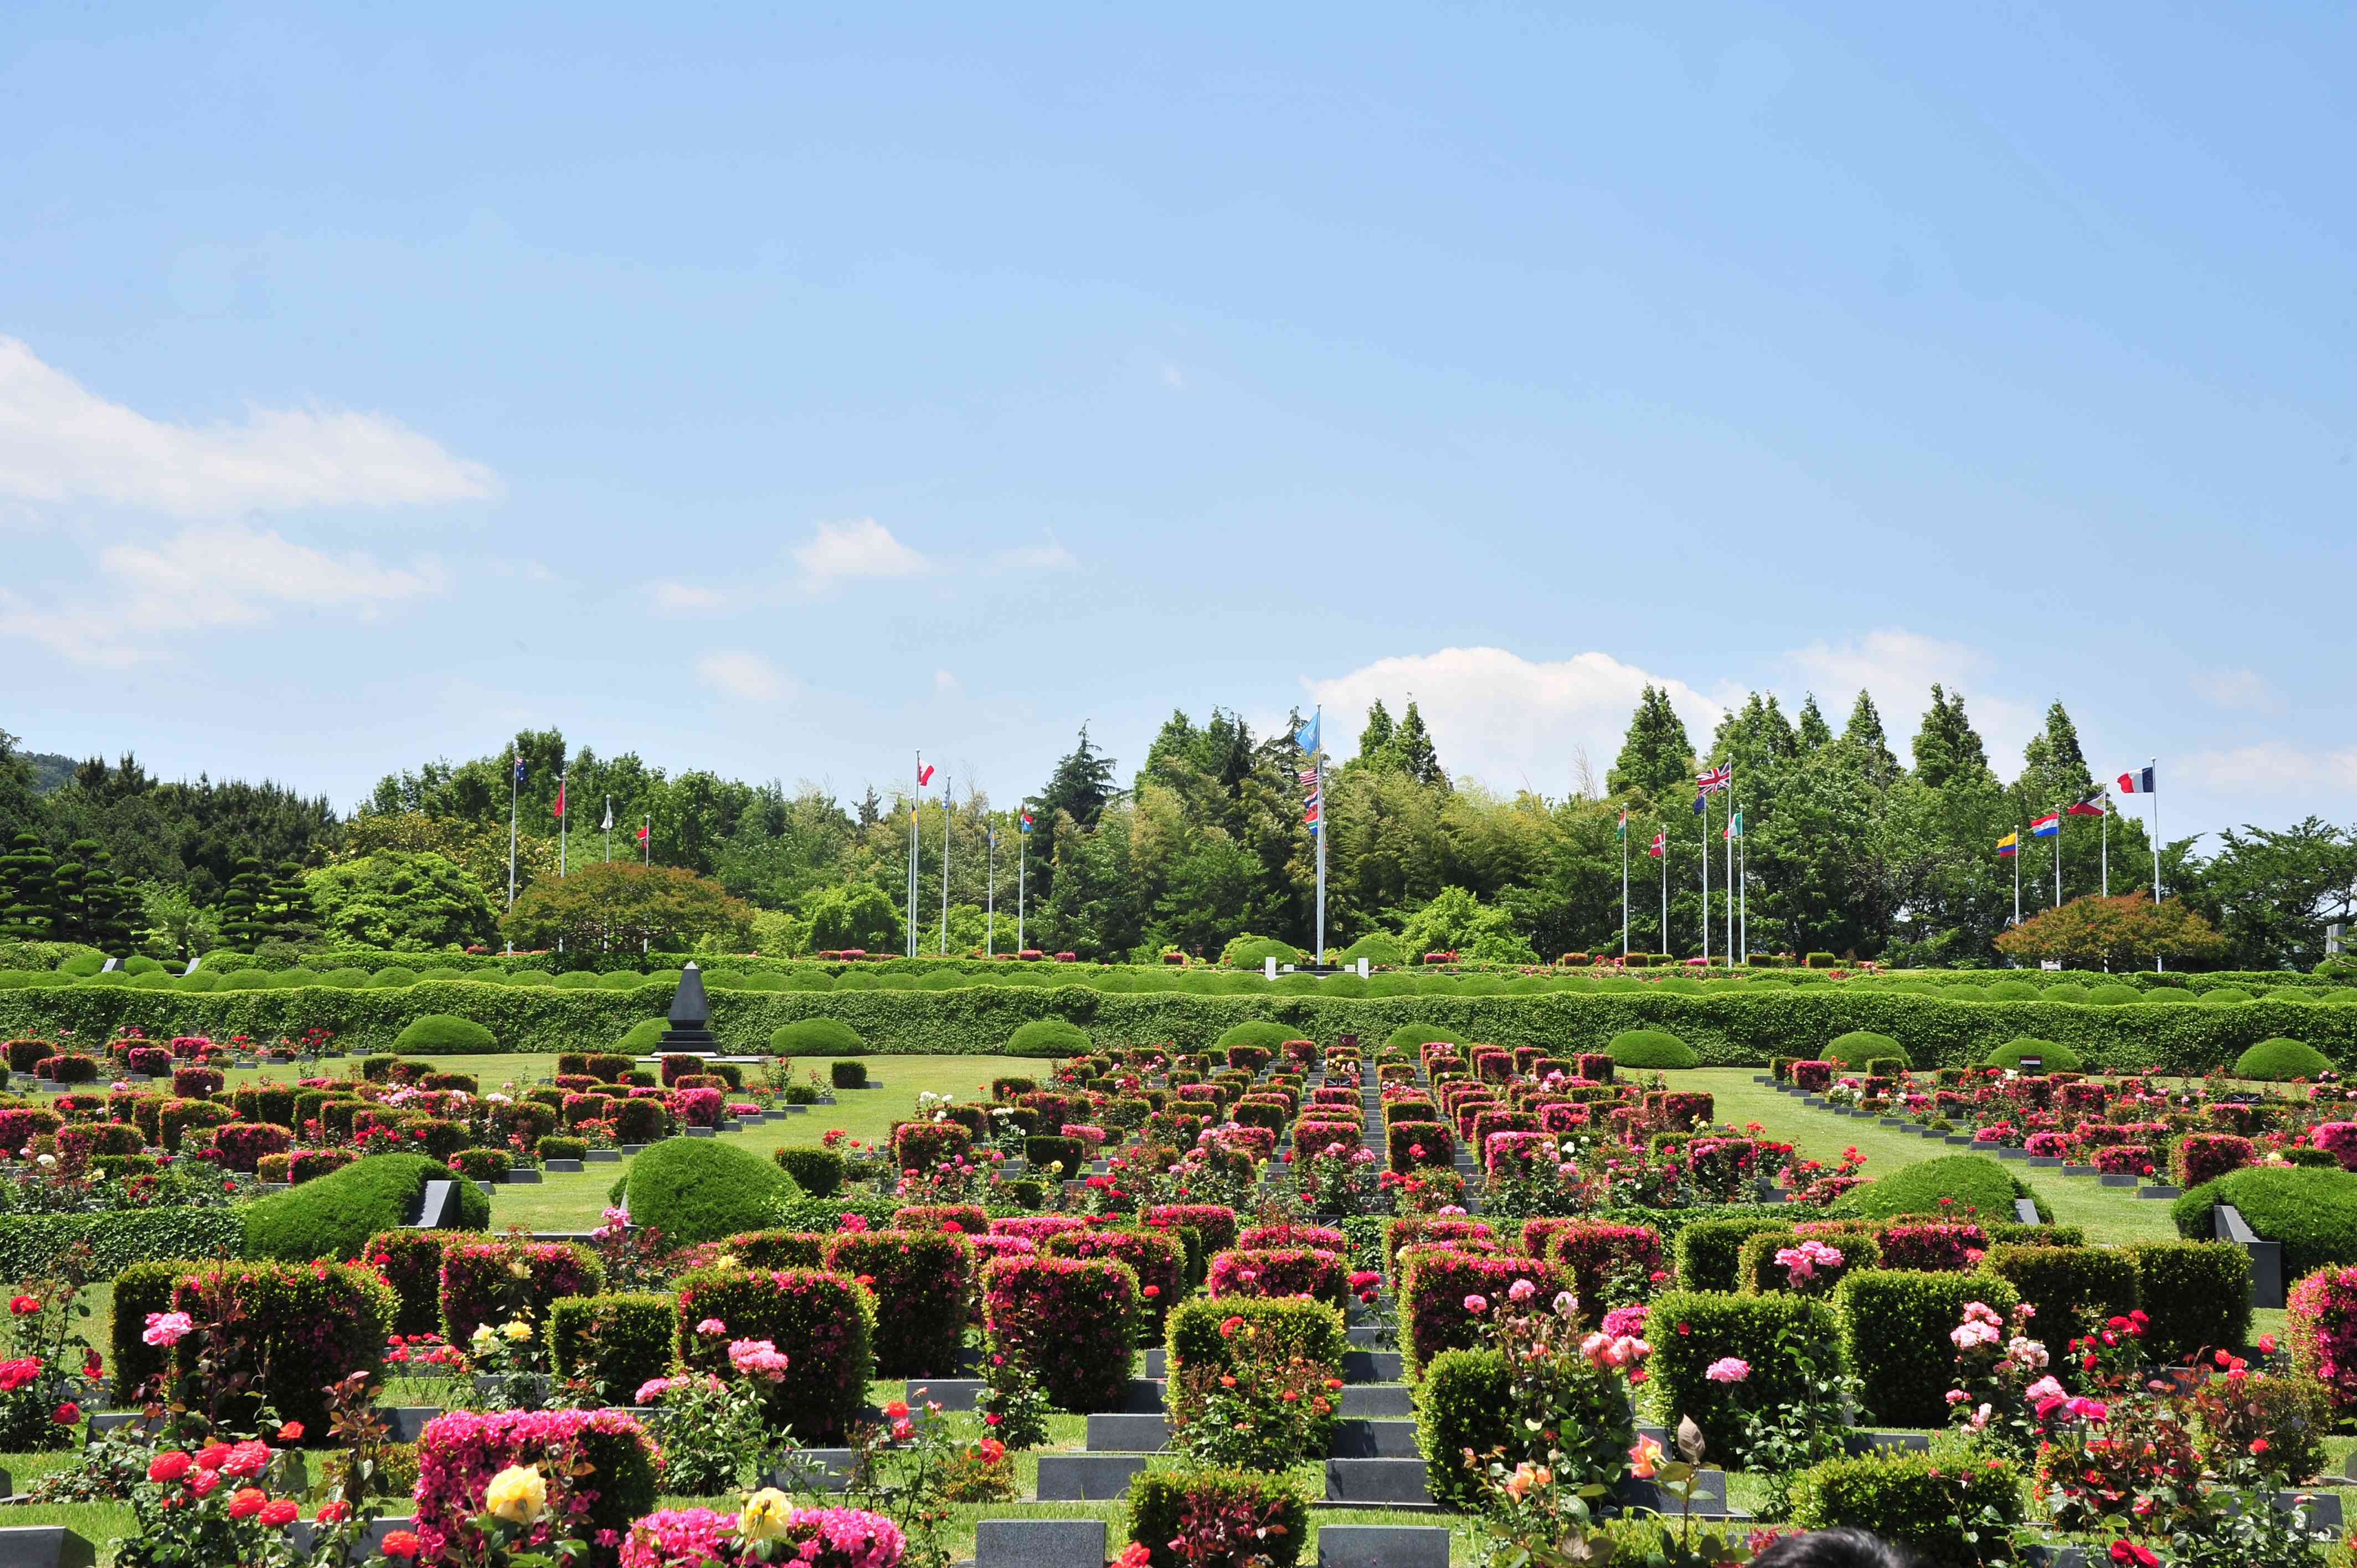 Square, flowering hedges and rectangular gravestones at the United Nations Memorial Cemetery in Busan, South Korea